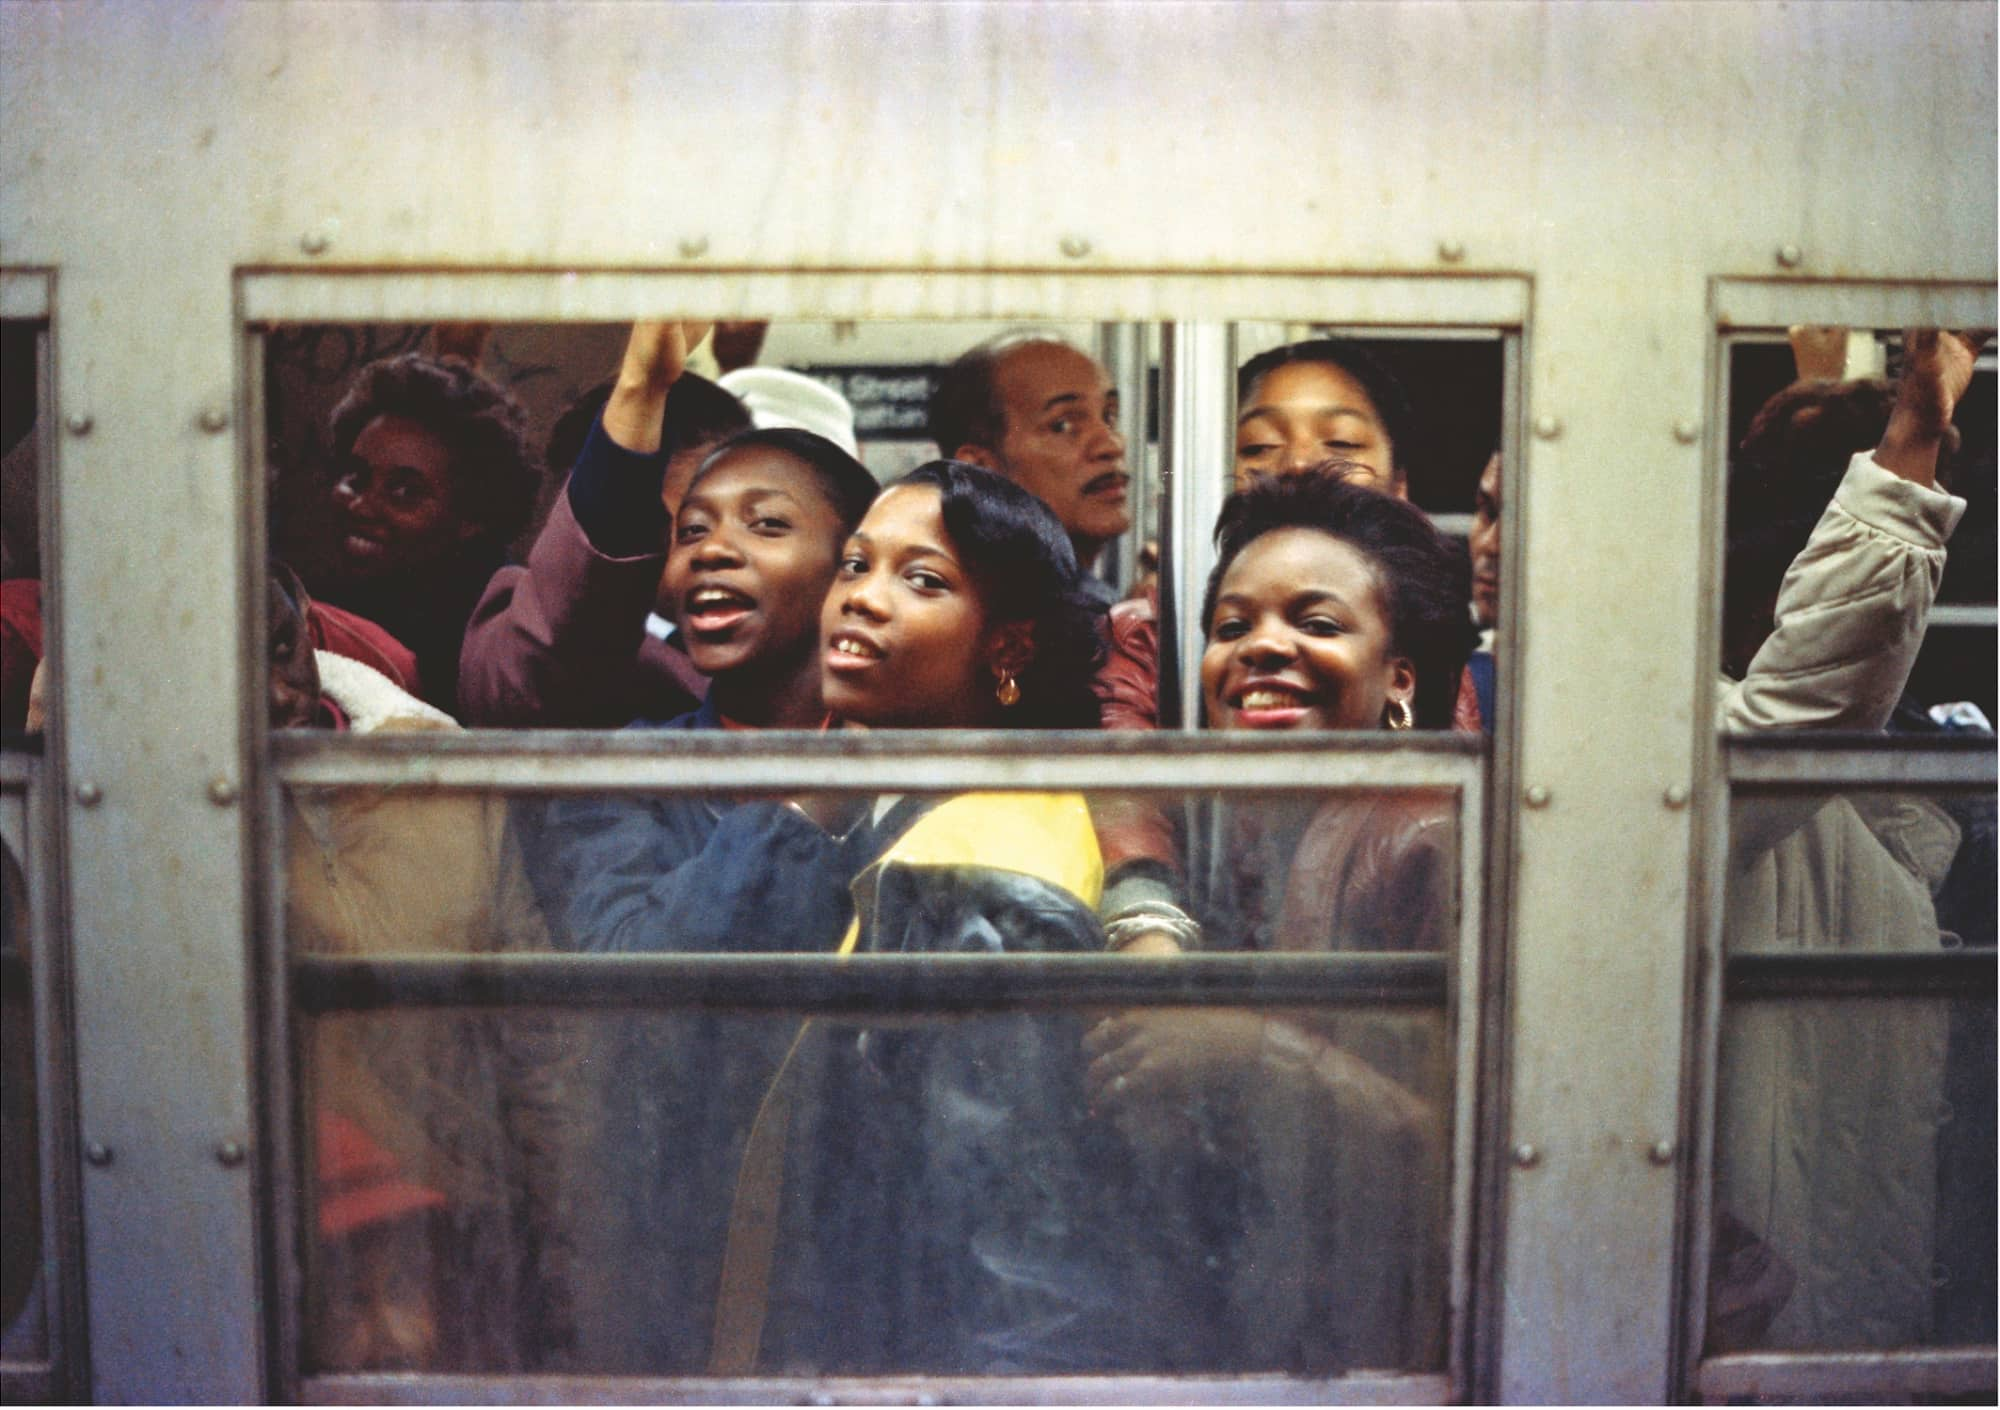 Jamel Shabazz - Rush Hour, NYC 1988